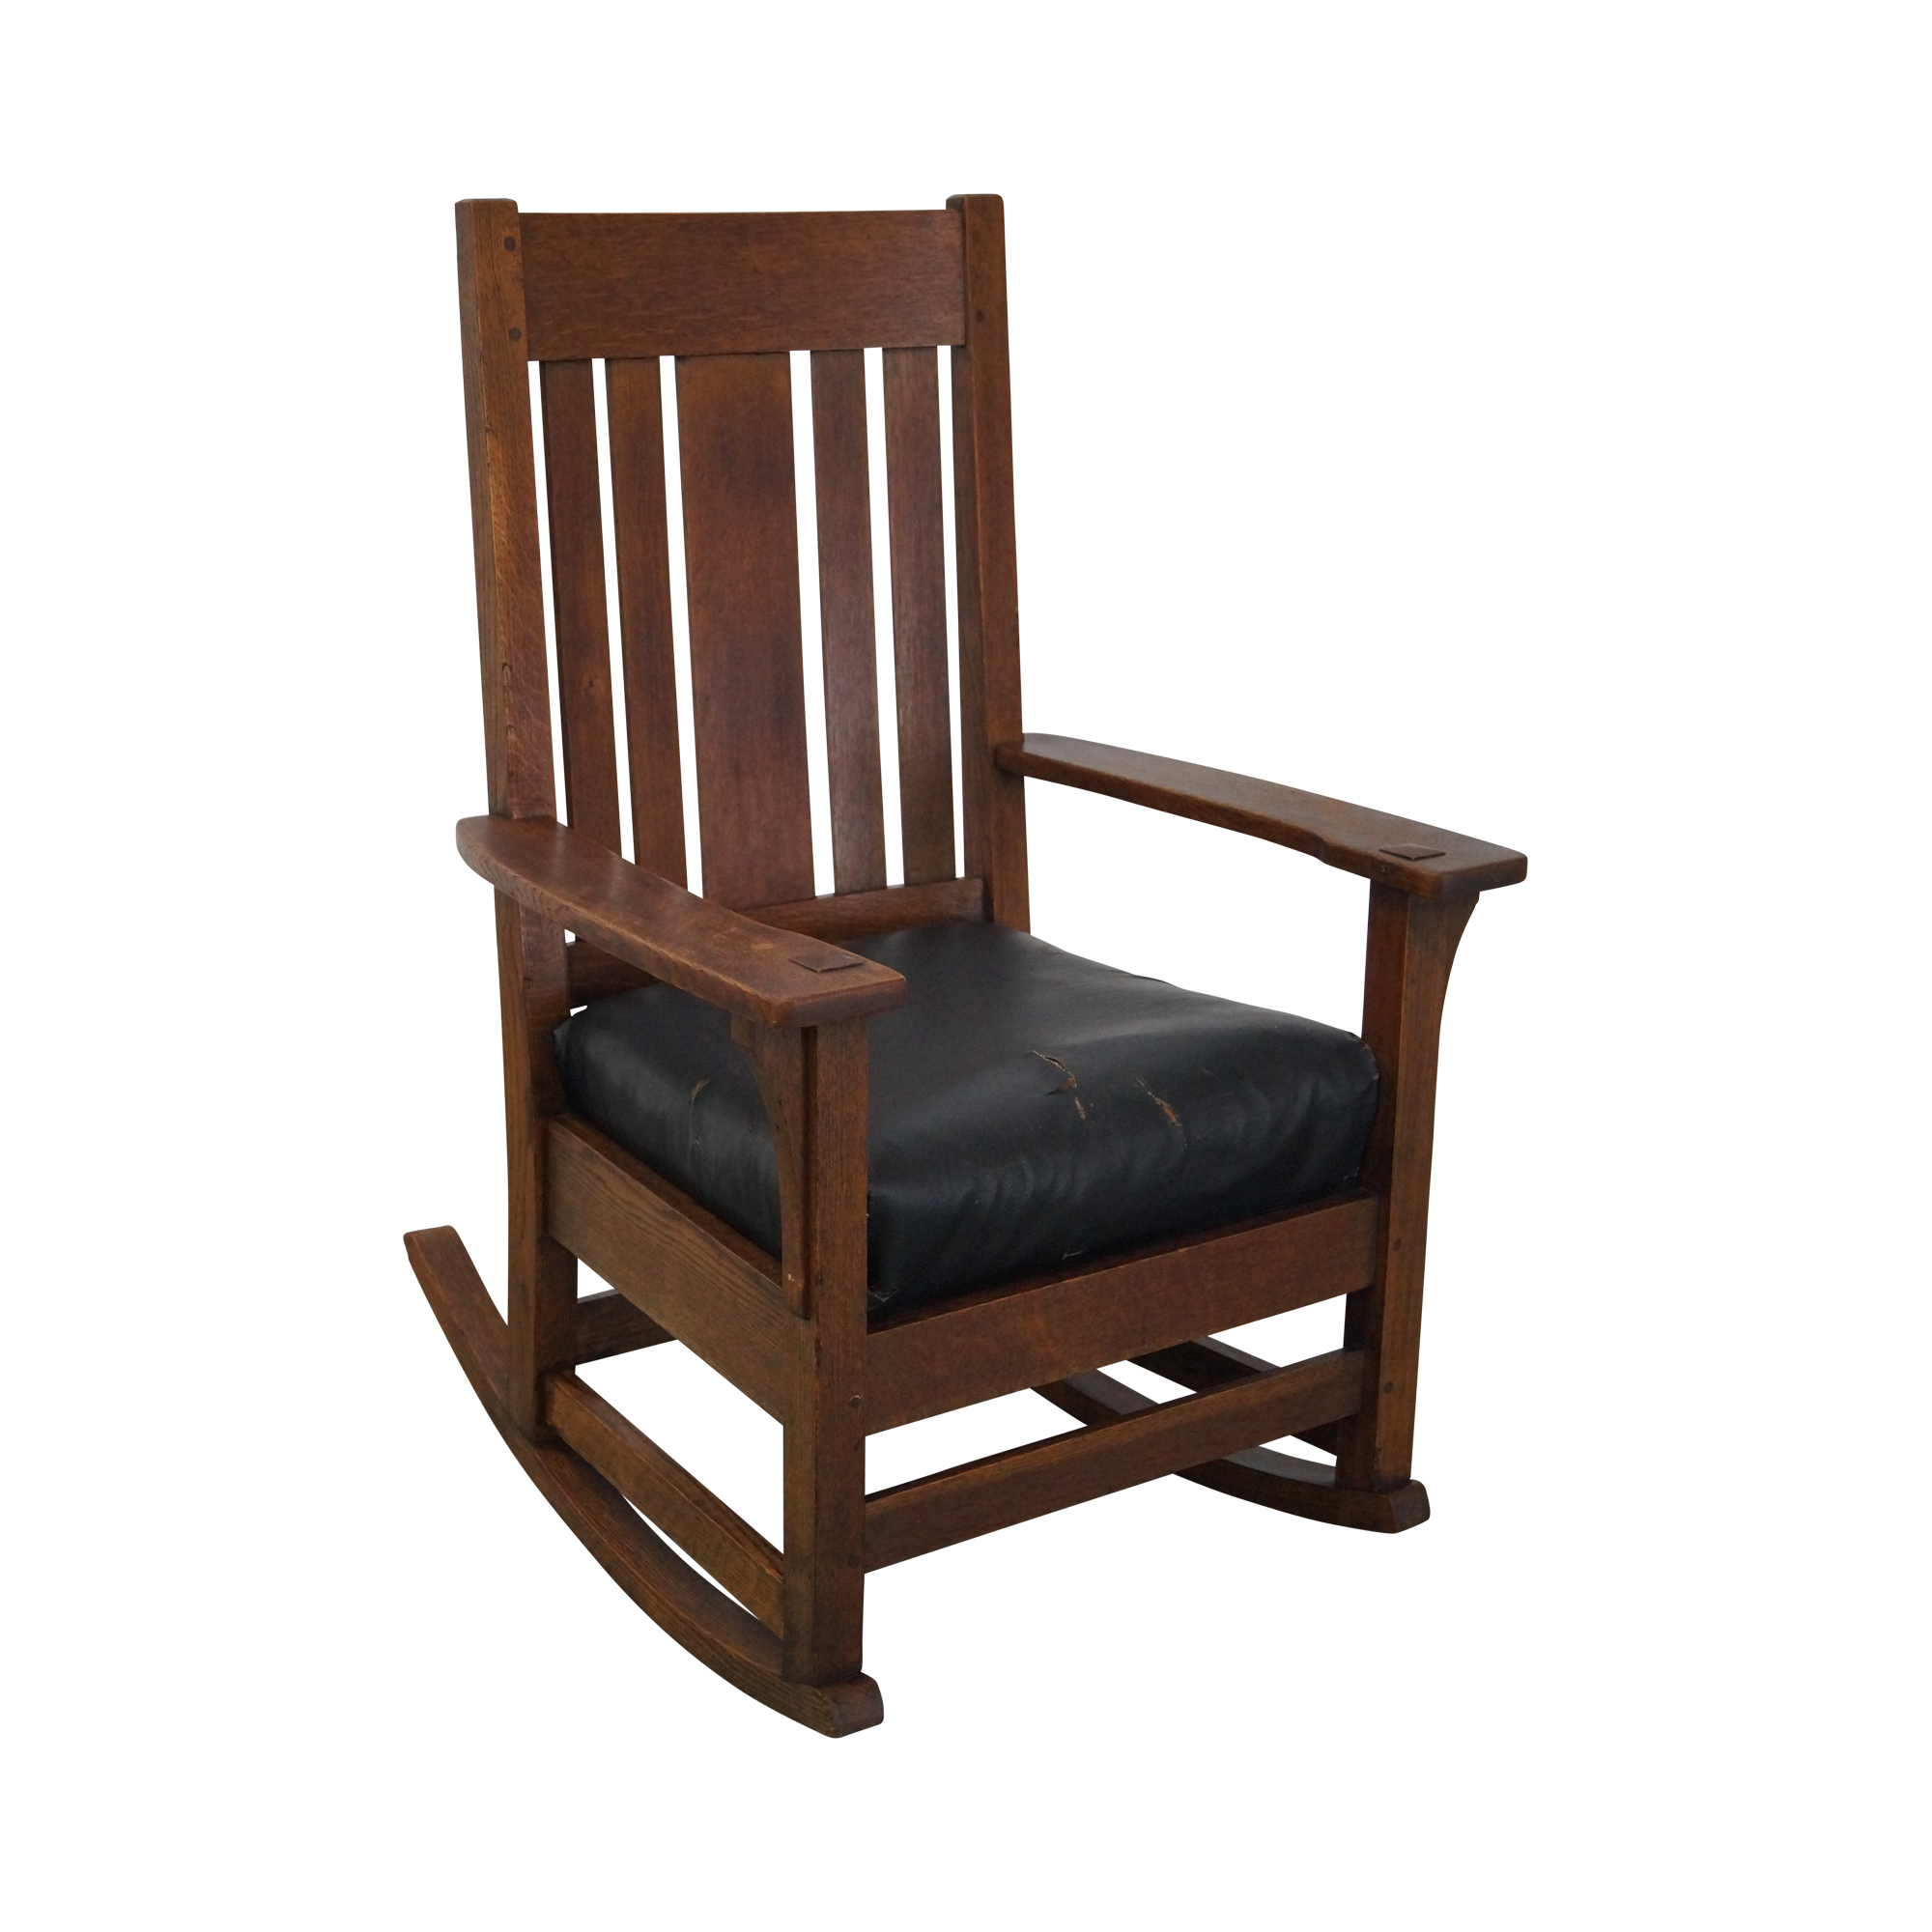 antique mission oak rocking chair chairish. Black Bedroom Furniture Sets. Home Design Ideas